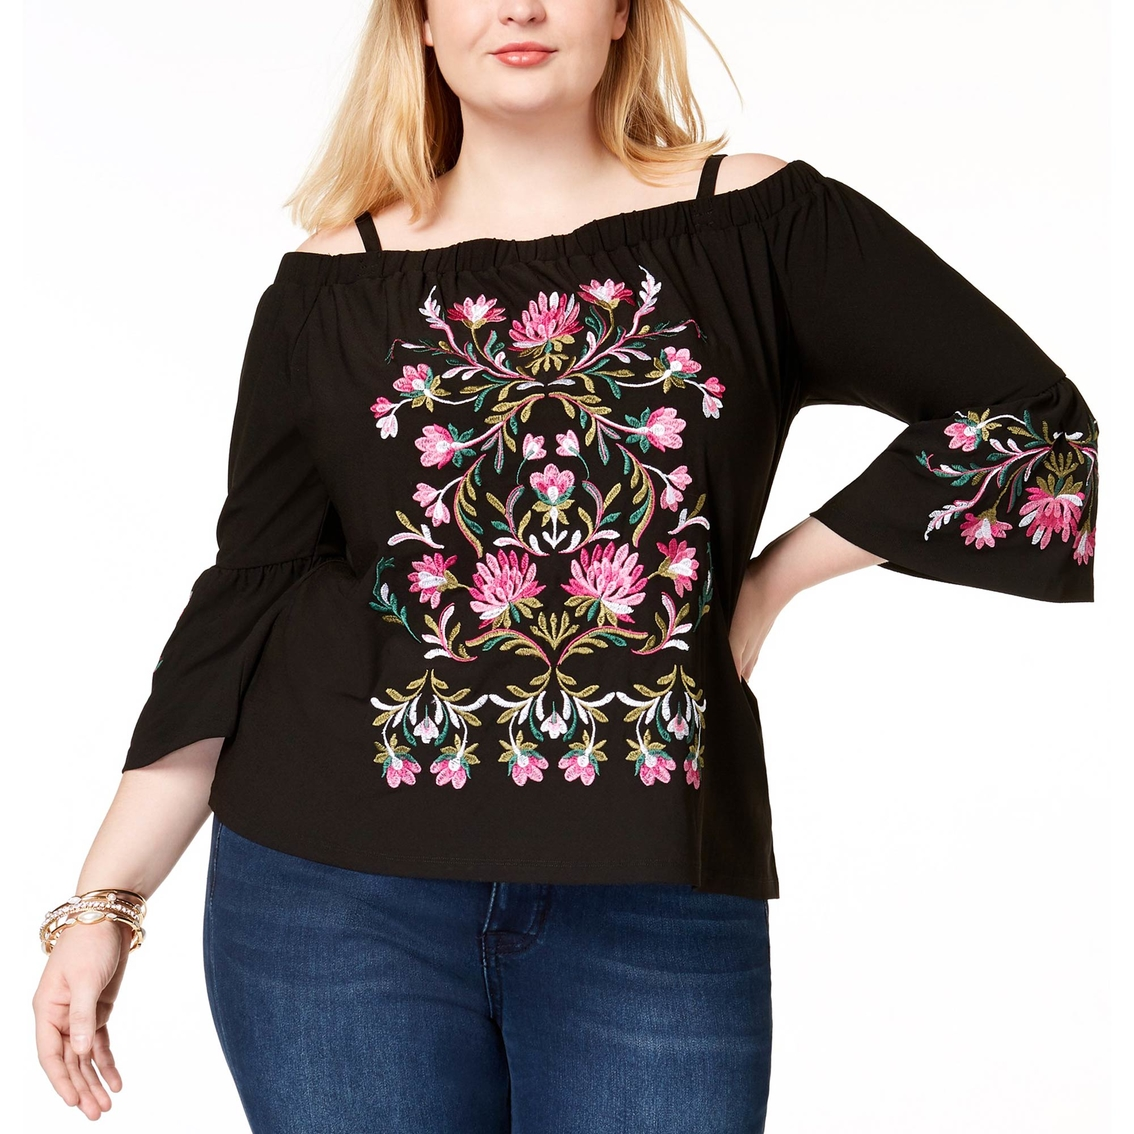 749f8d79e451d6 Inc International Concepts Plus Size Embroidered Off The Shoulder ...